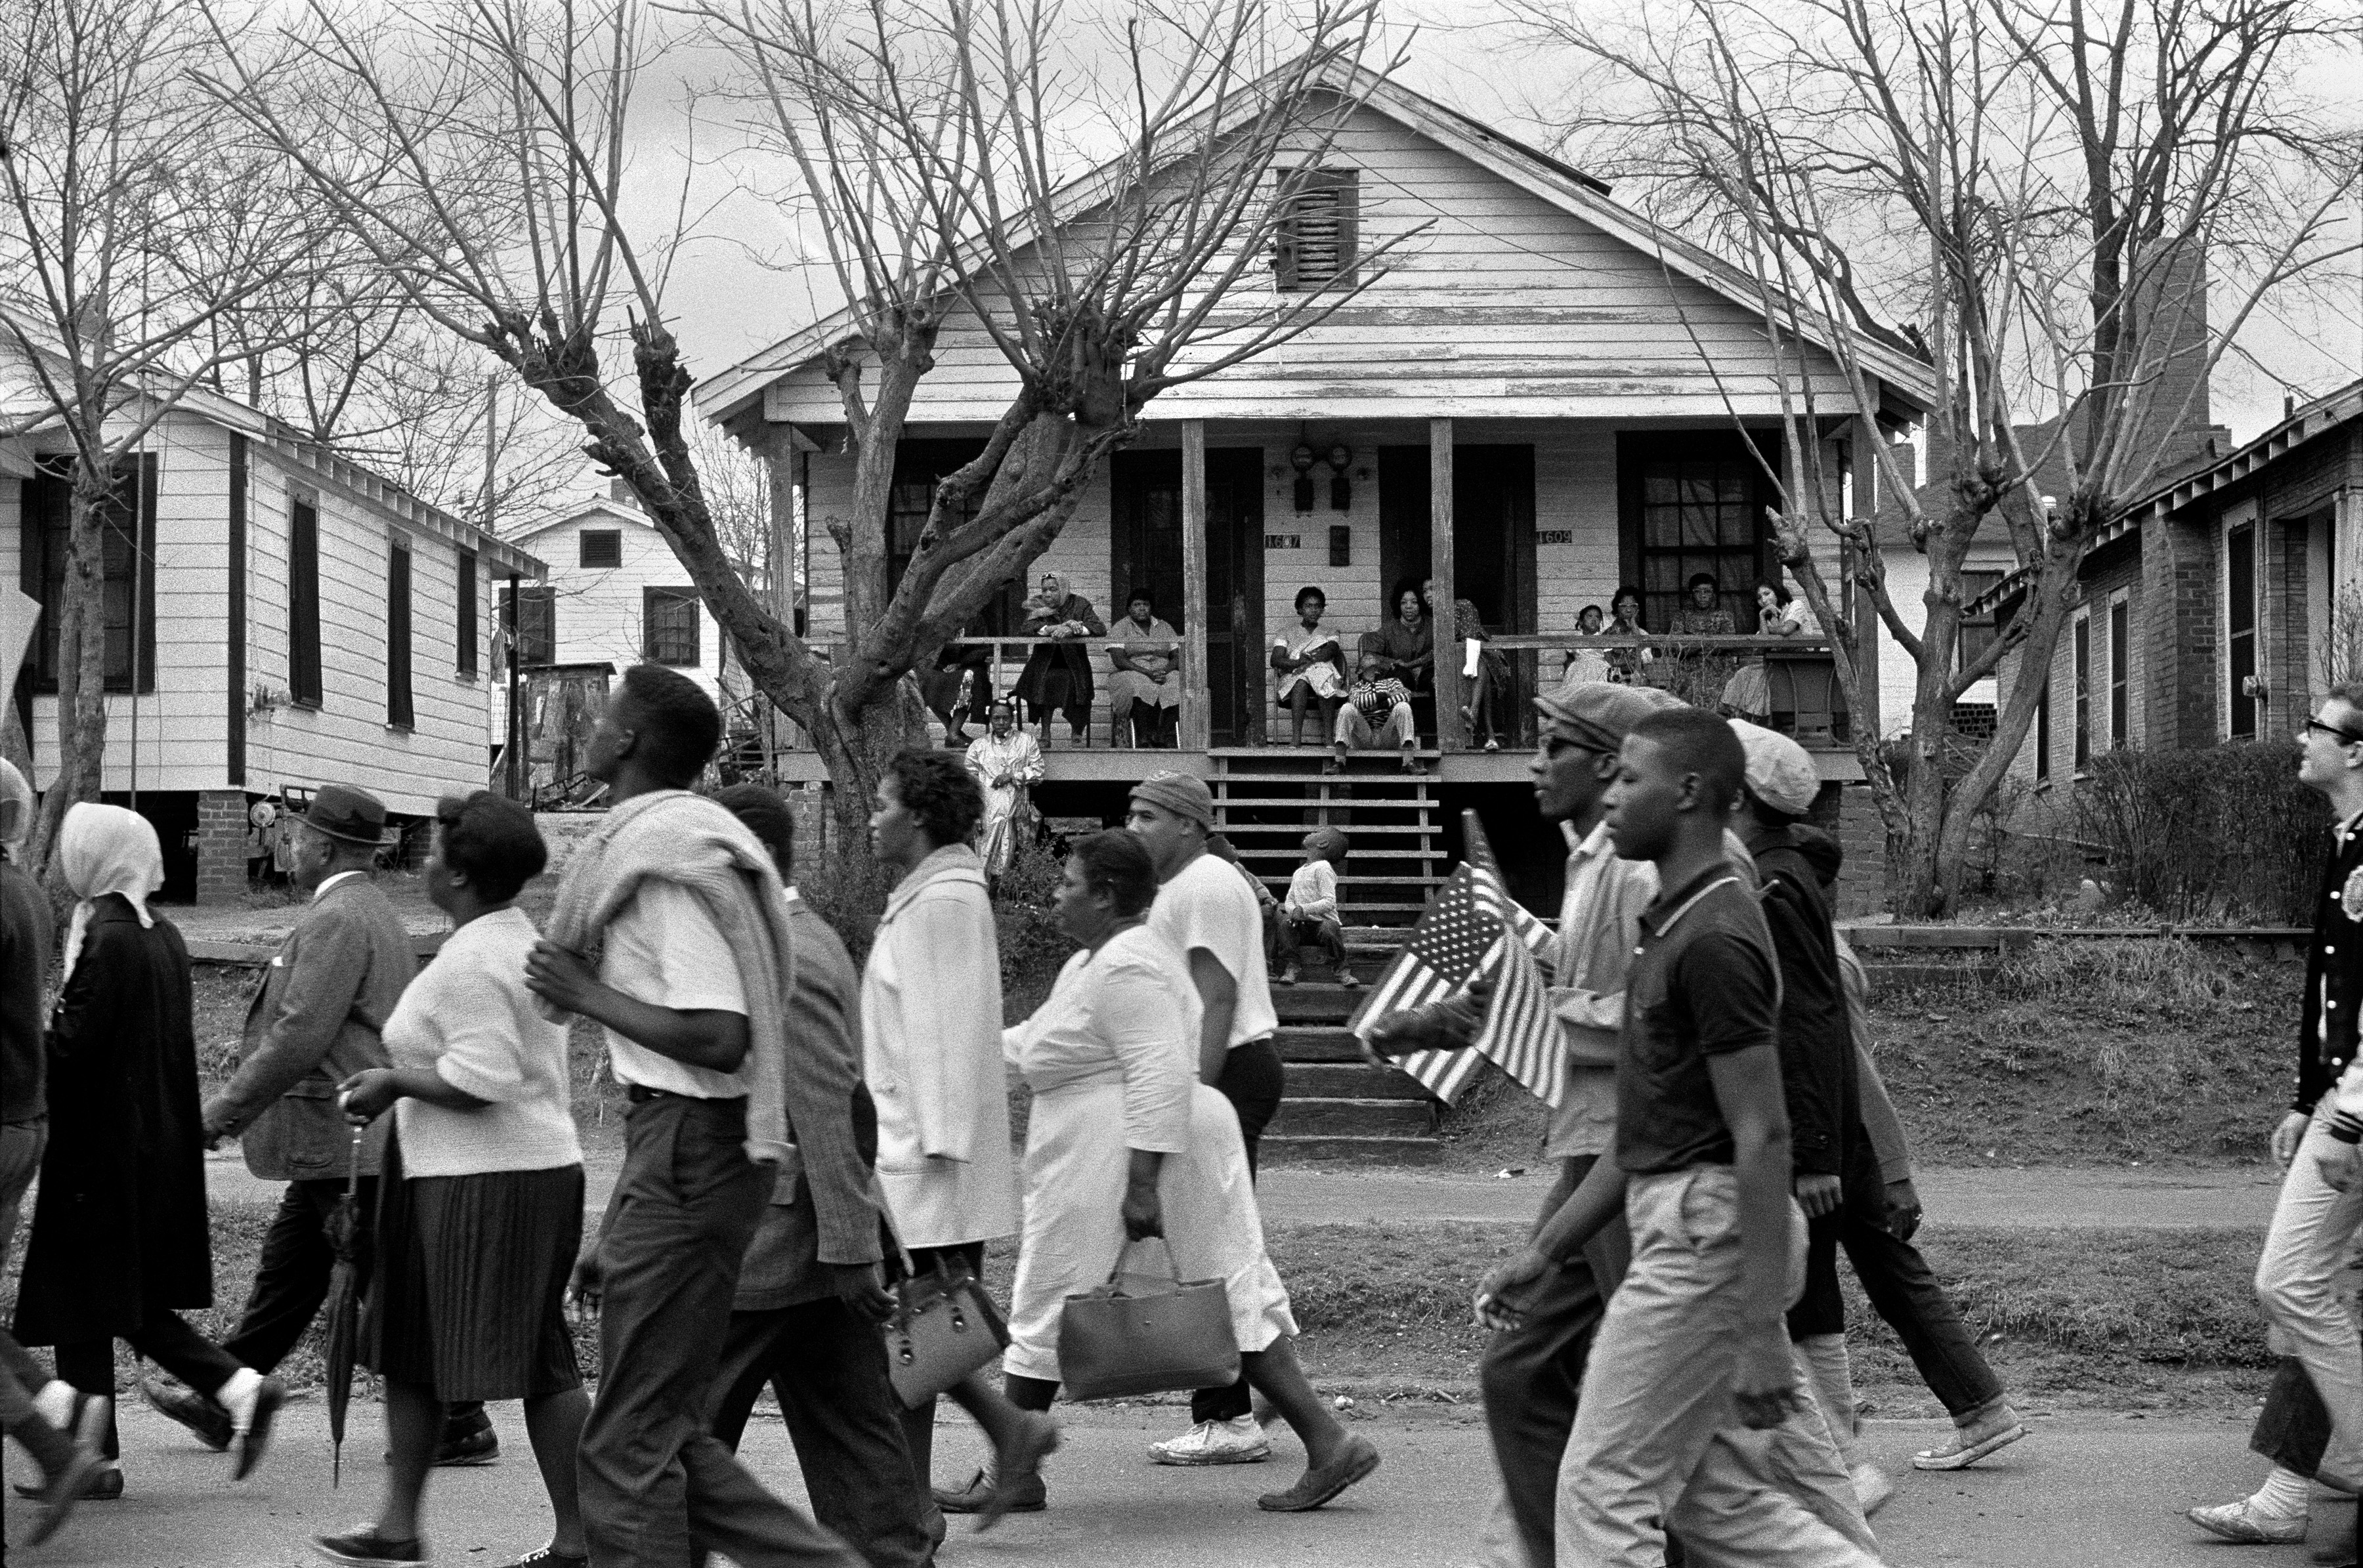 Stephen Somerstein, Marchers on the way to Montgomery as families watch from their porches, 1965. Courtesy of the photographer